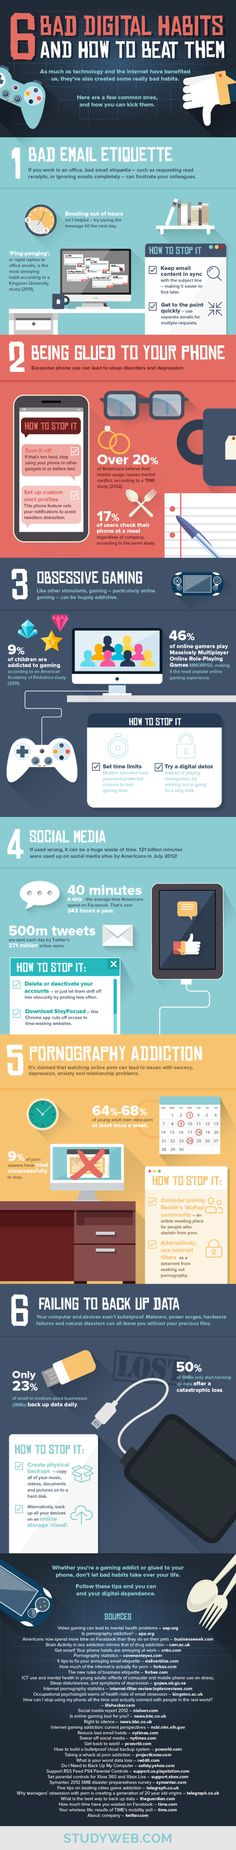 6 Dreadful Digital Habits and How to Overcome Them